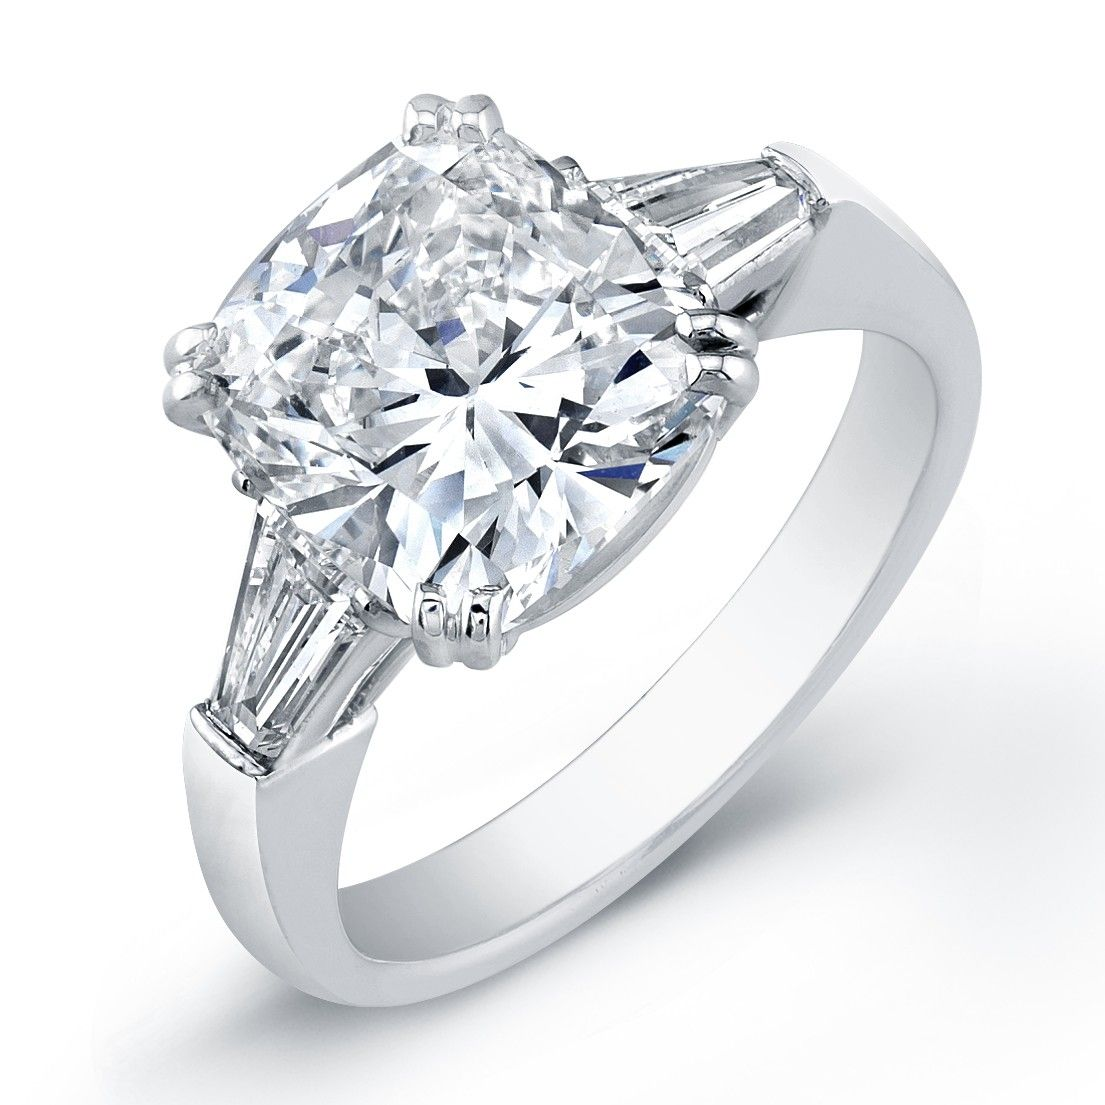 bvlgari engagement rings Google Search Diamonds Pinterest